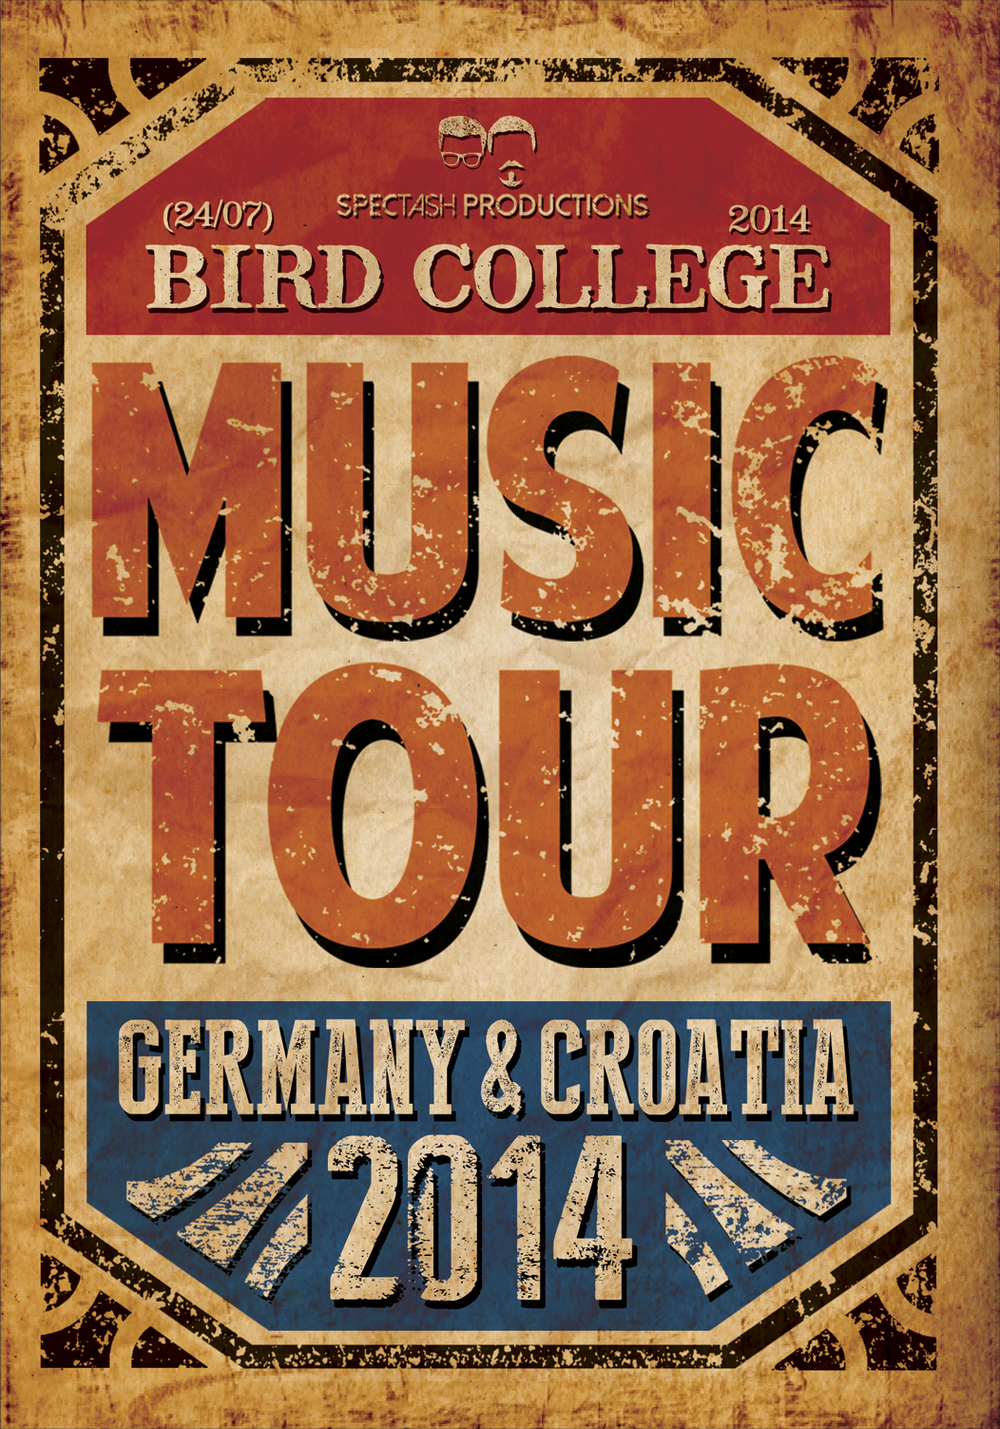 Image of Croatia Tour 2014 - Bird College